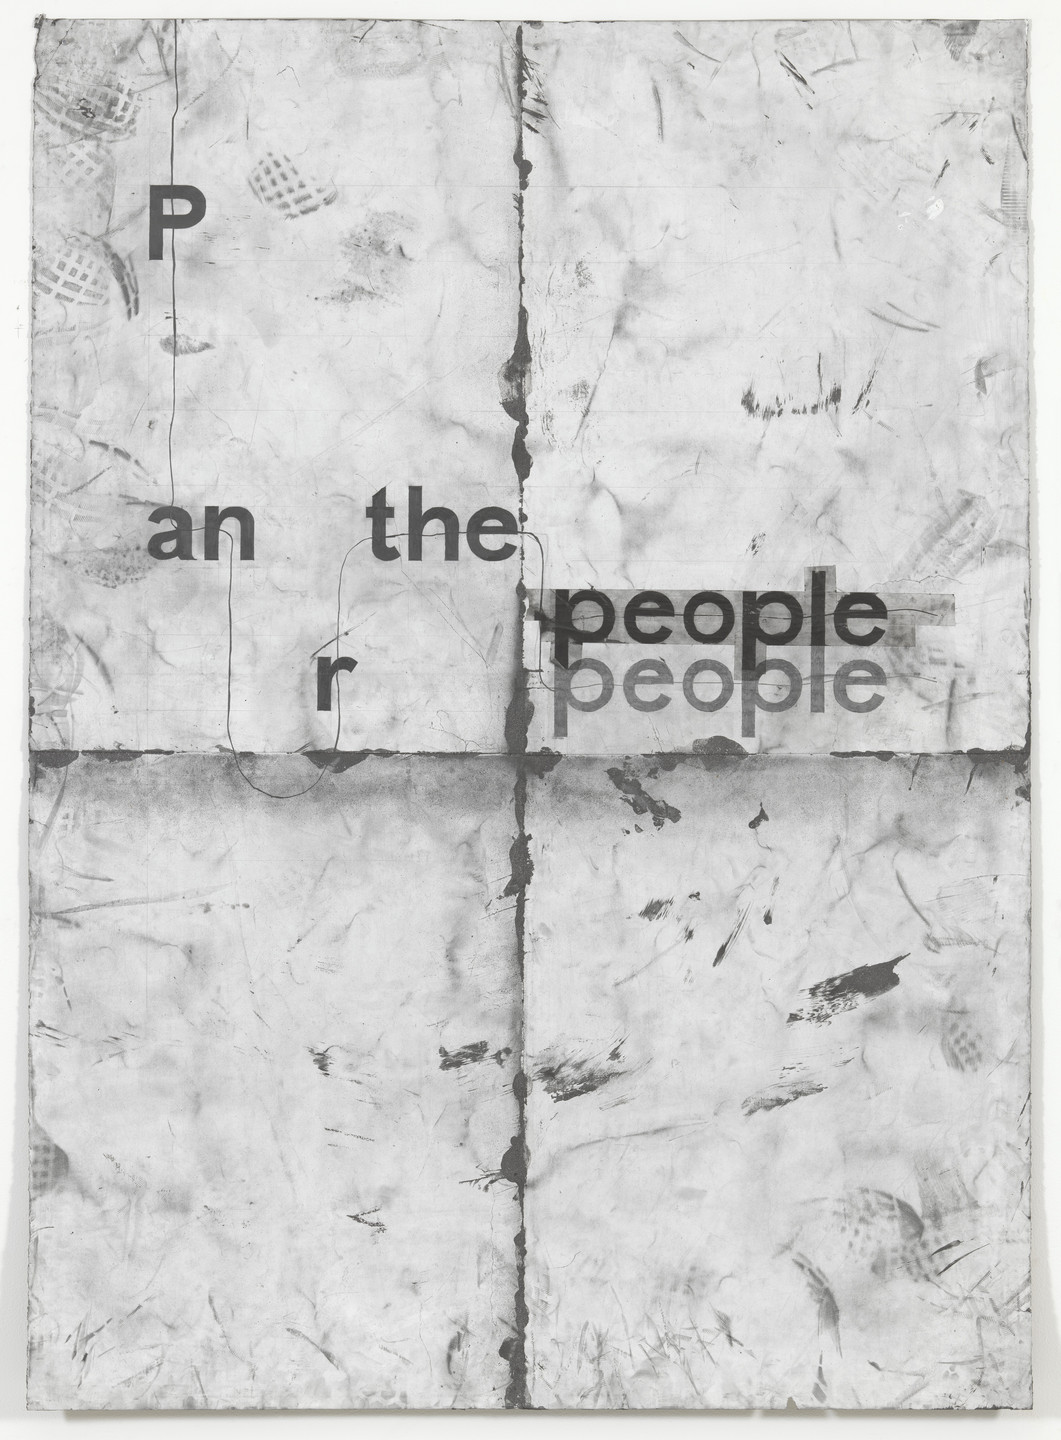 Tony Lewis. P an r the people. 2014